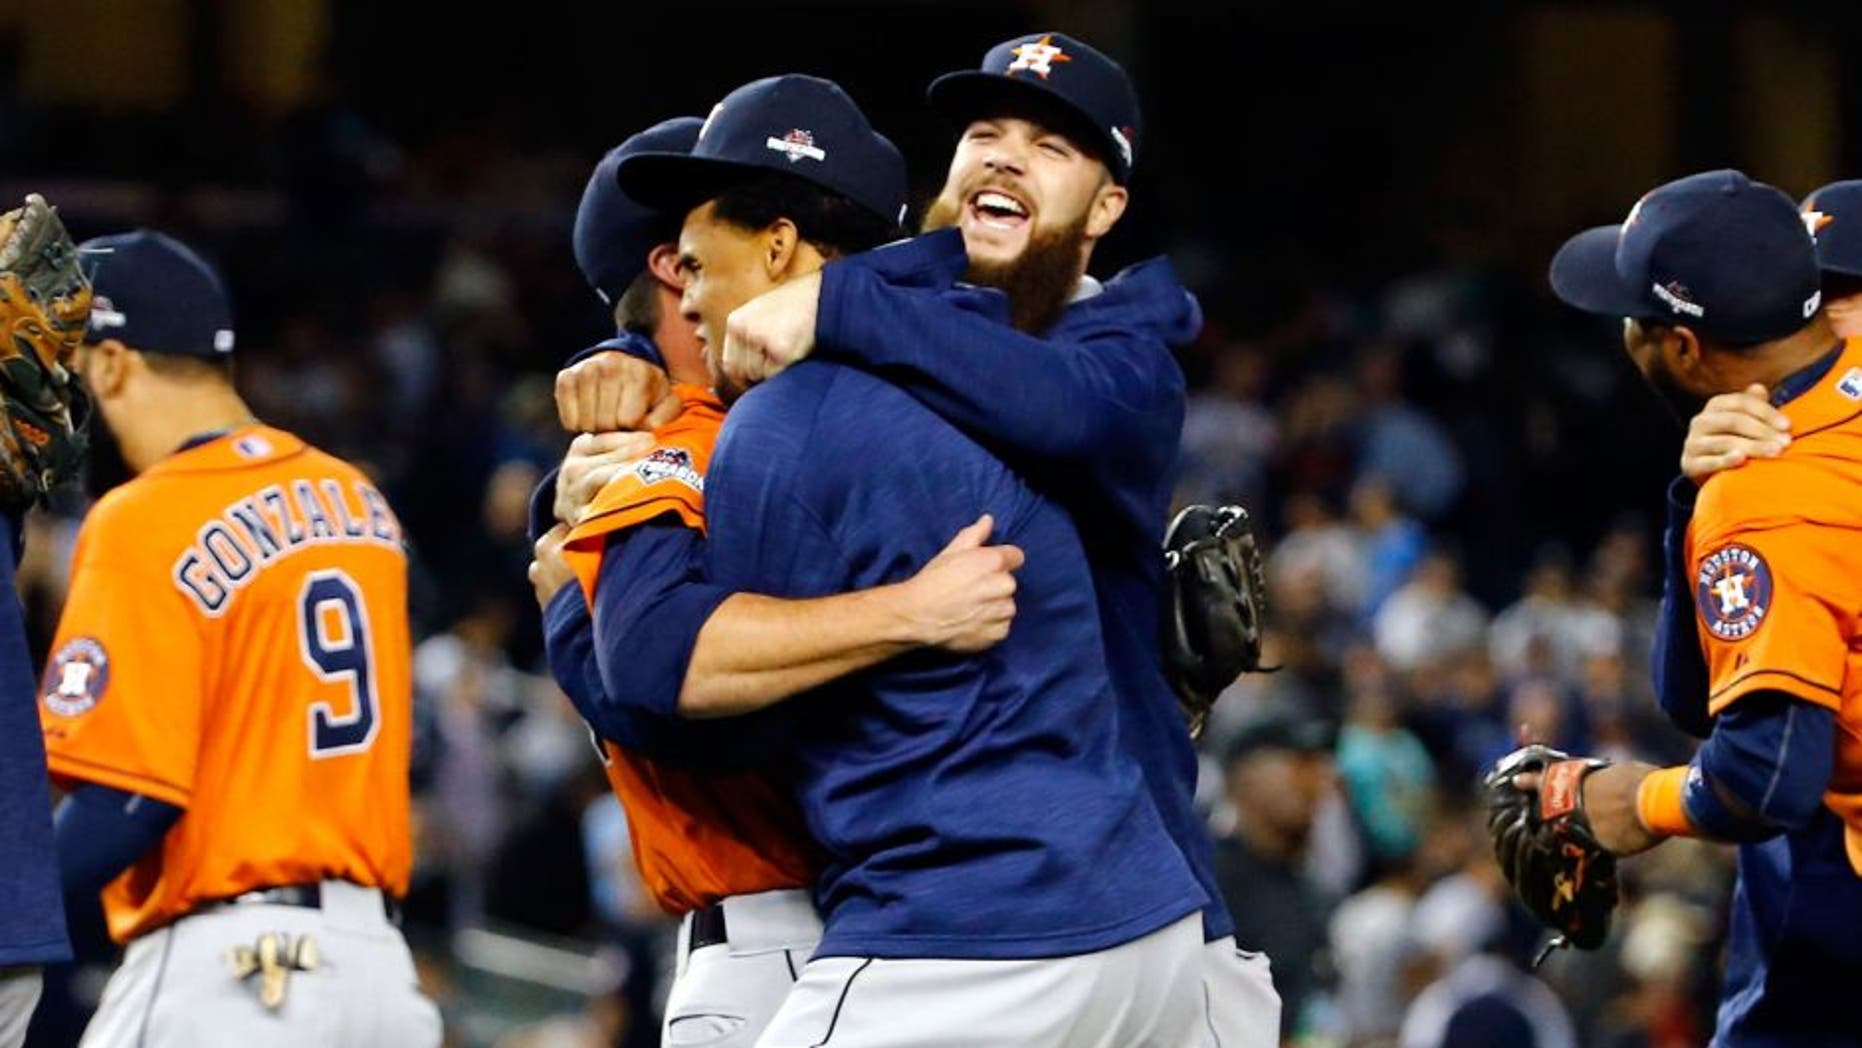 NEW YORK, NY - OCTOBER 06: The Houston Astros celebrate defeating the New York Yankees in the American League Wild Card Game at Yankee Stadium on October 6, 2015 in New York City. The Astros defeated the Yankees with a score of 3 to 0. (Photo by Al Bello/Getty Images)